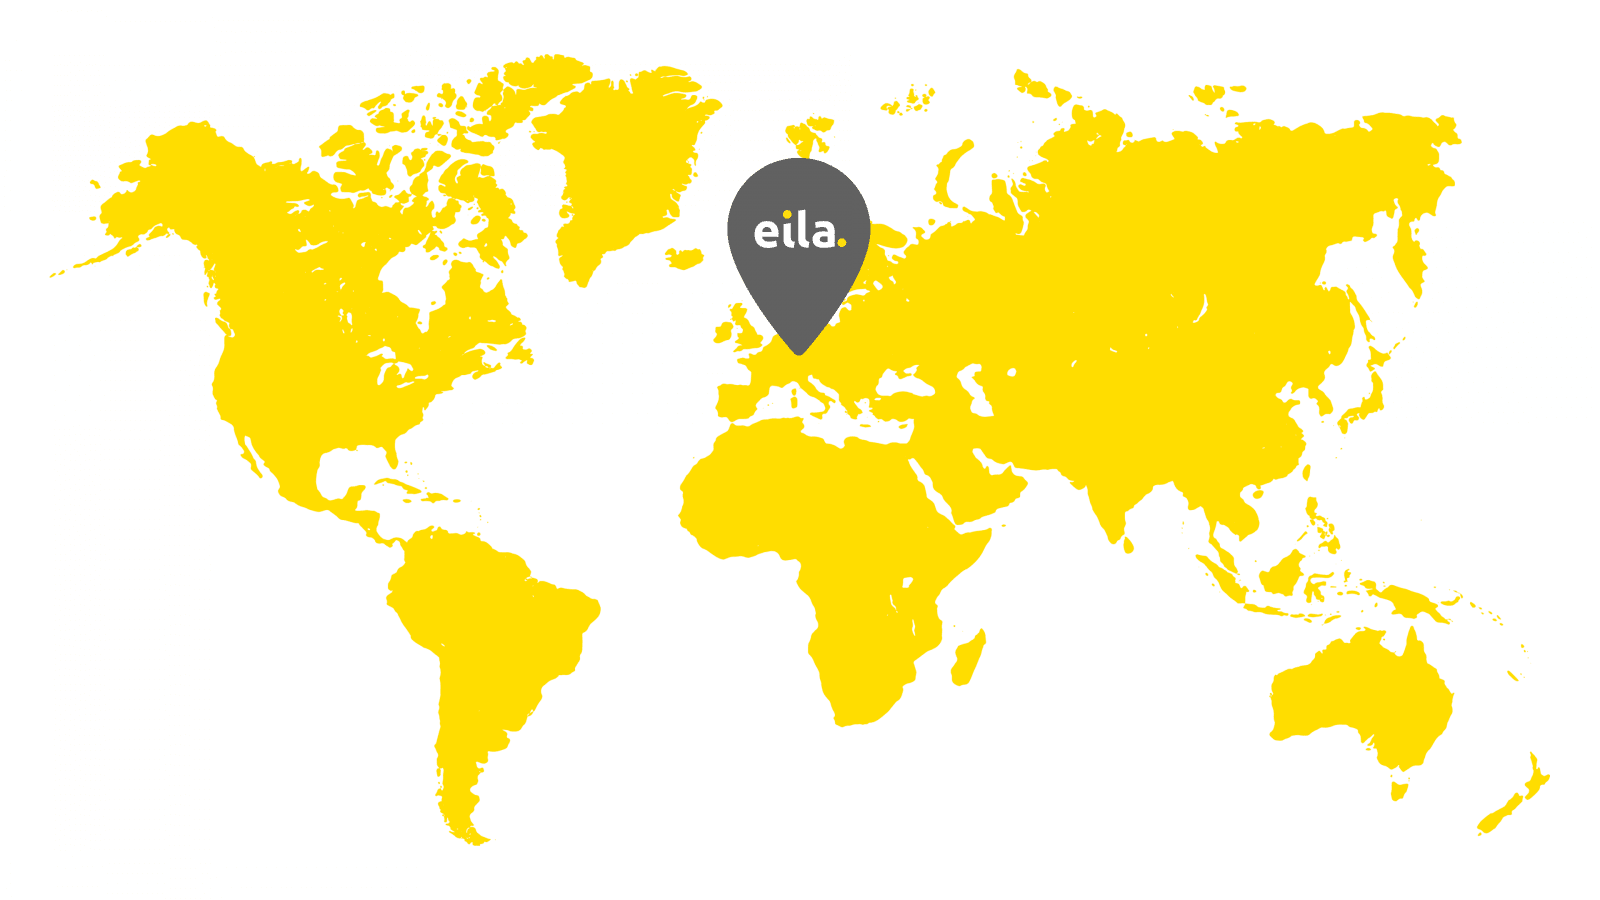 World map with eila logo